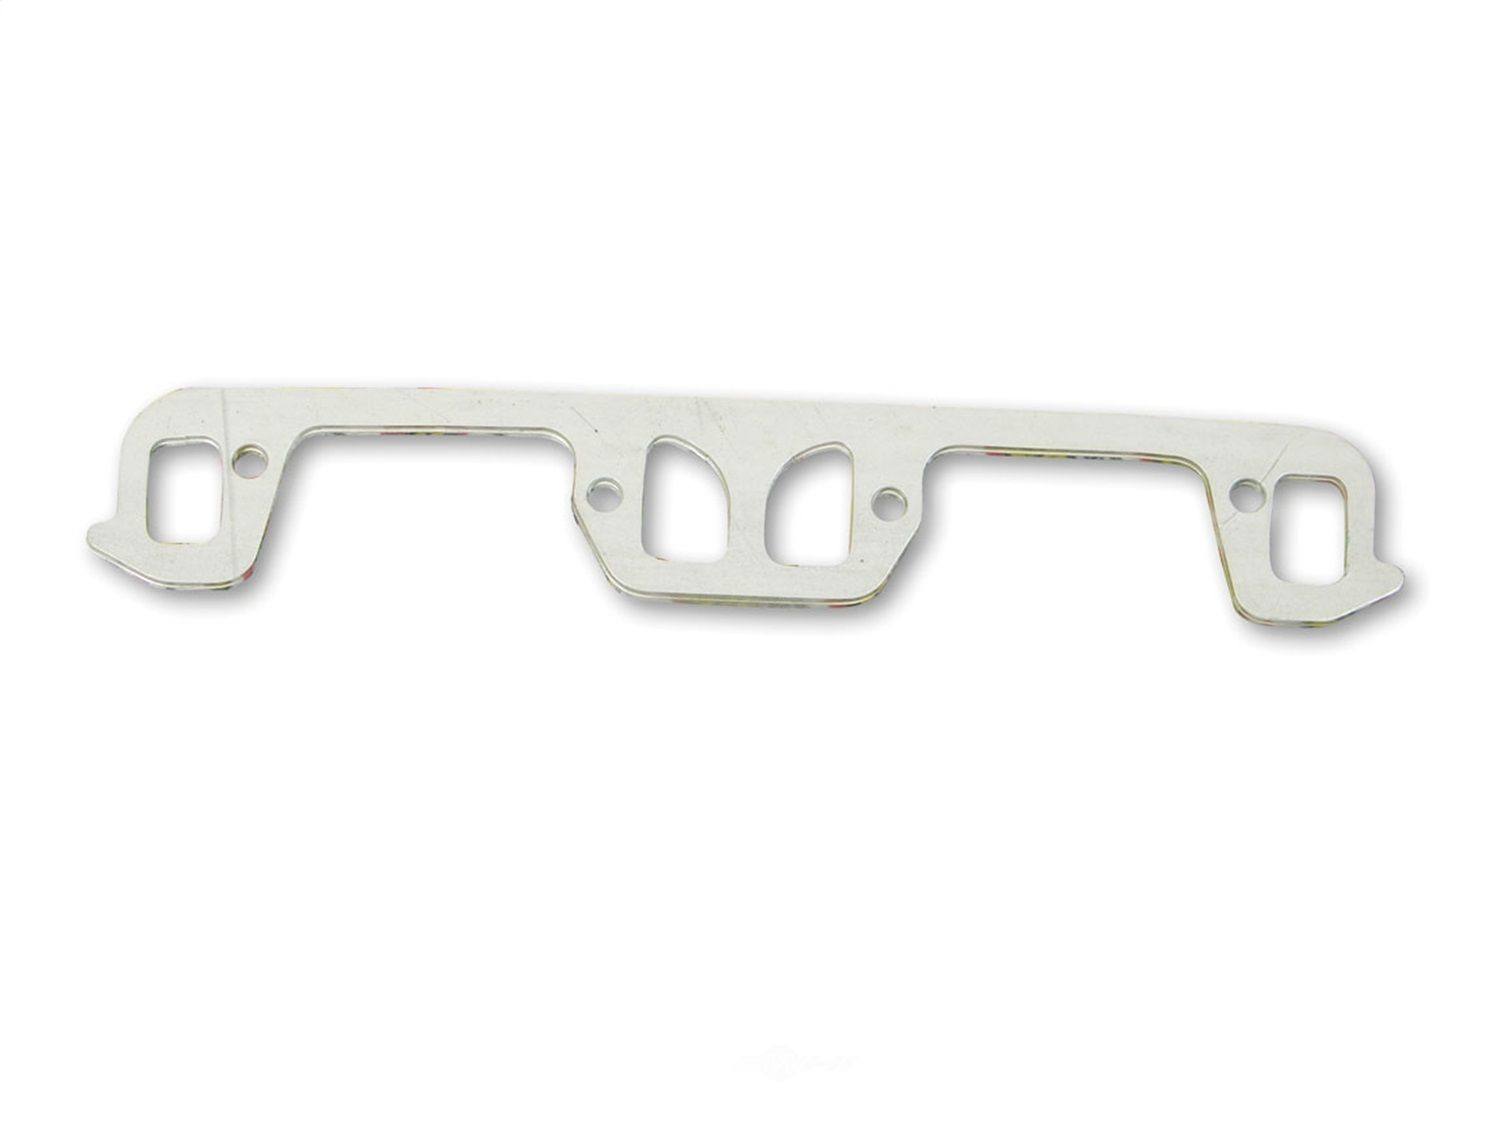 HOOKER HEADERS - Super Competition Header Gasket - HOO 10836HKR